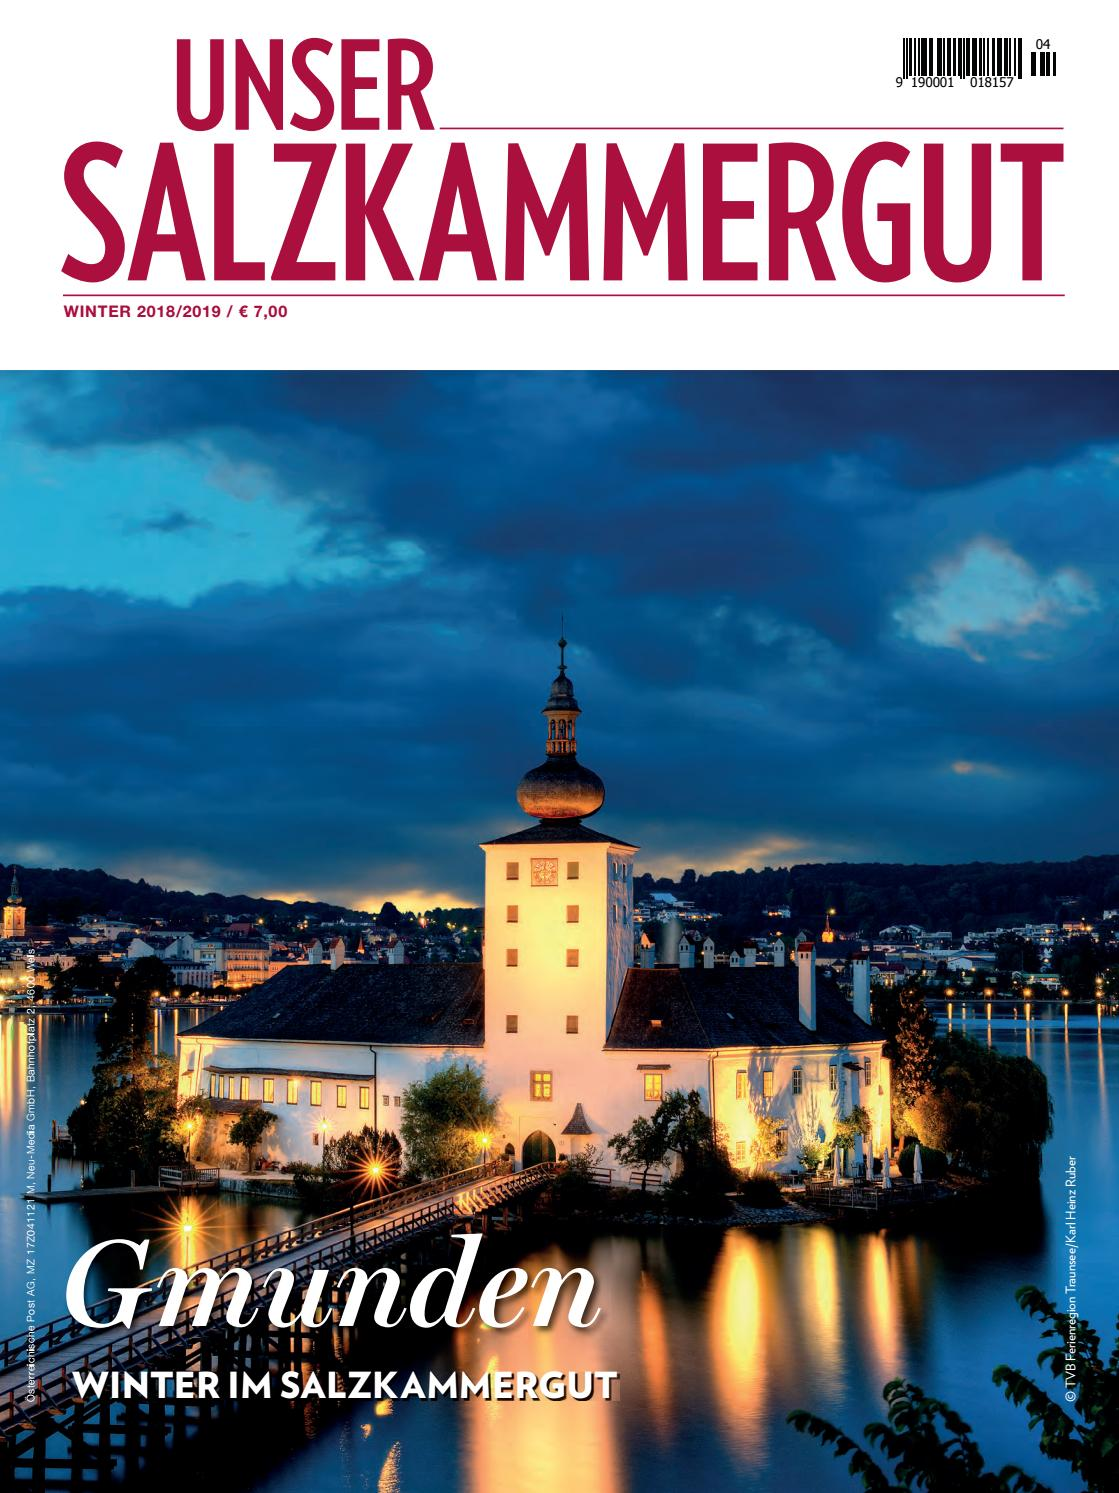 7106d7754c478d Unser Salzkammergut Winter 2018 2019 by Bundesländerinnen - issuu